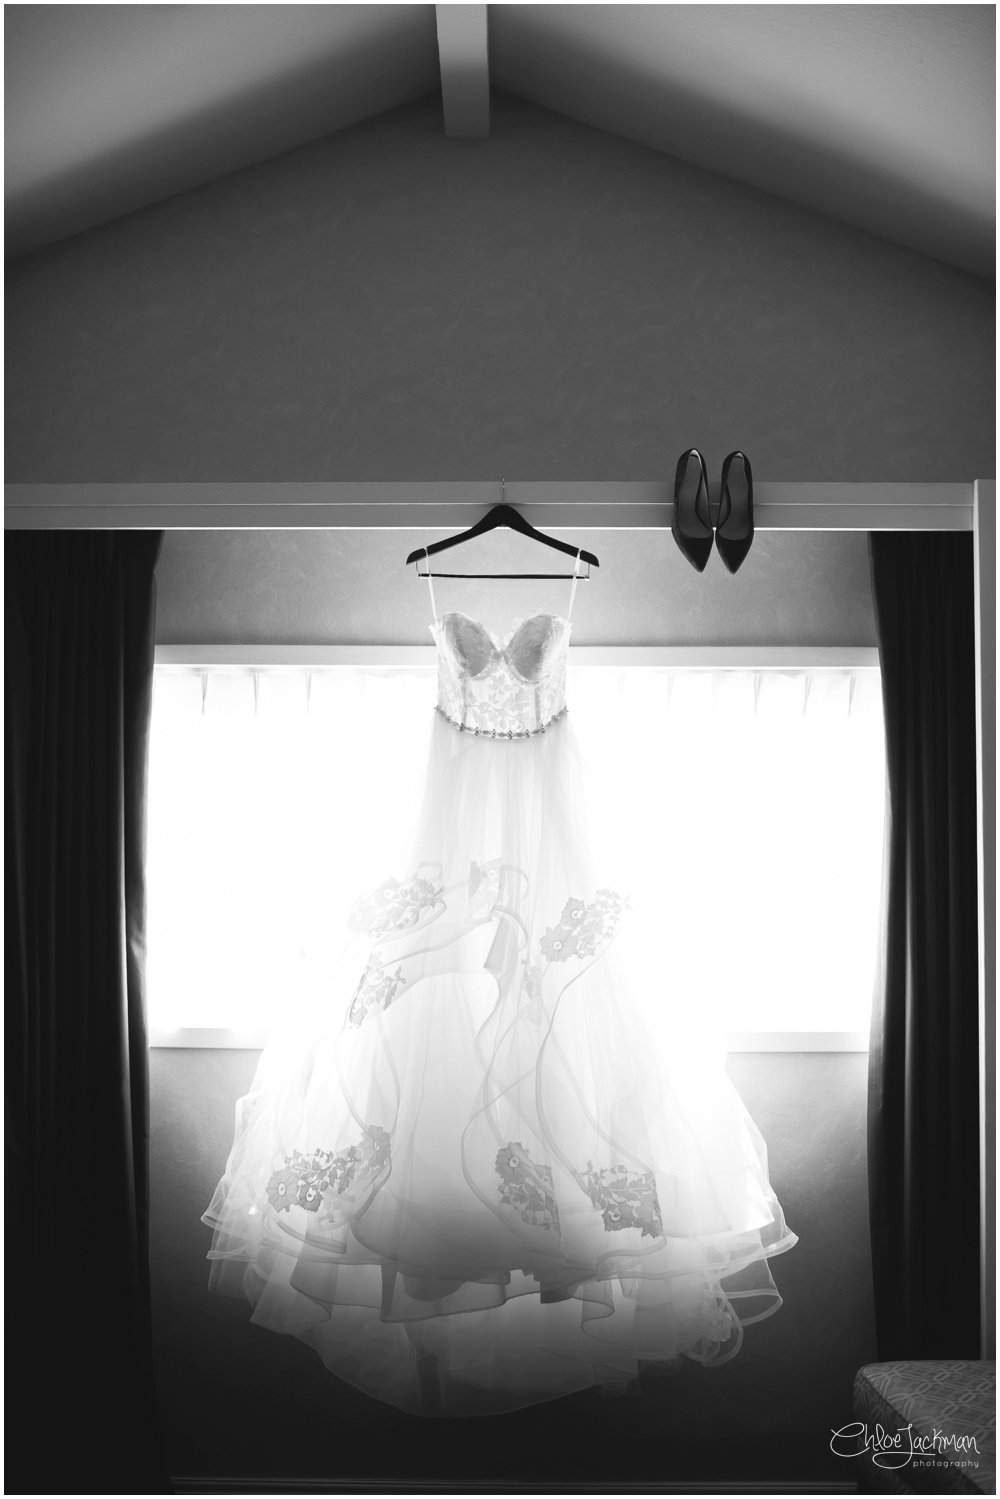 Hayley Paige wedding dress hanging in window